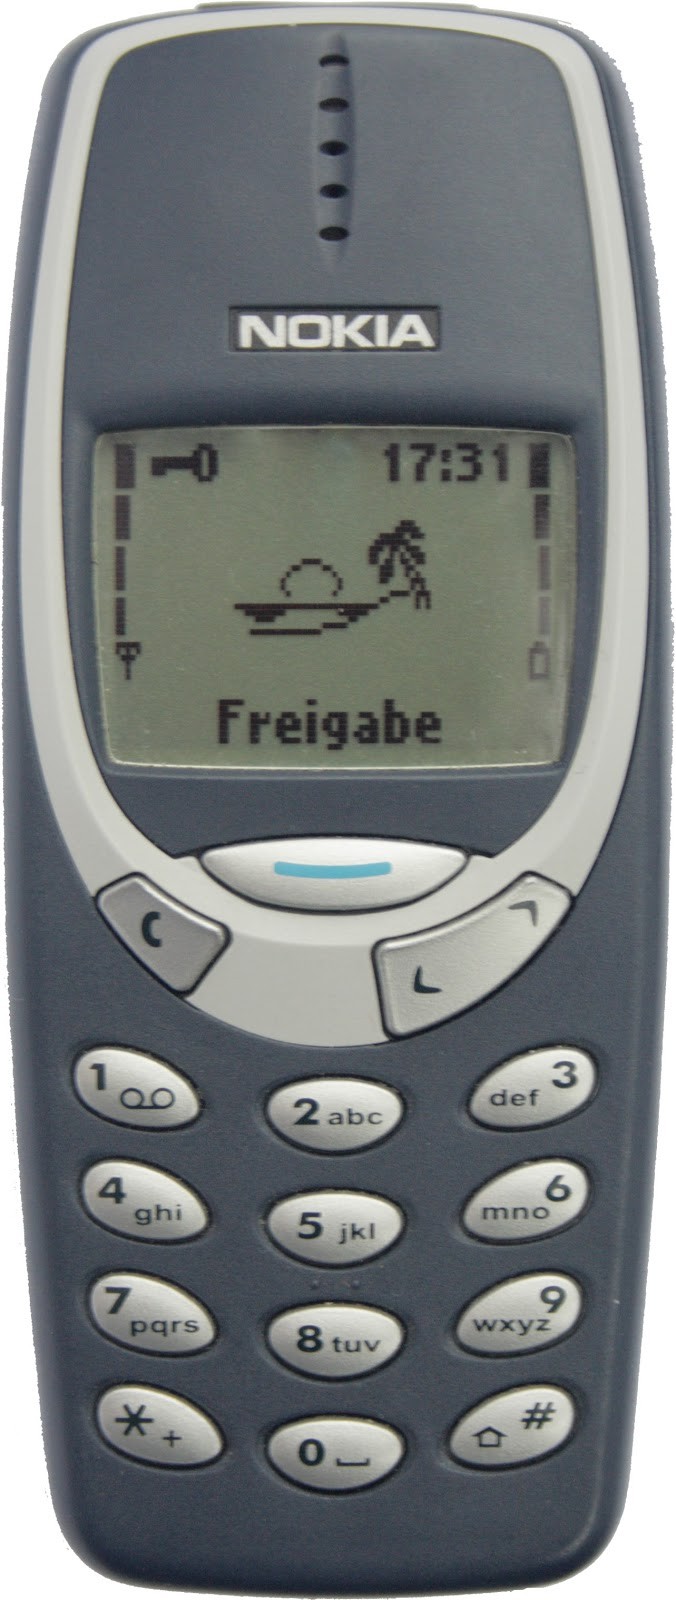 Nostalgia Trip All The Cellphones I Have Ever Owned Nokia 3310 Troubleshooting Image From Wikipedia